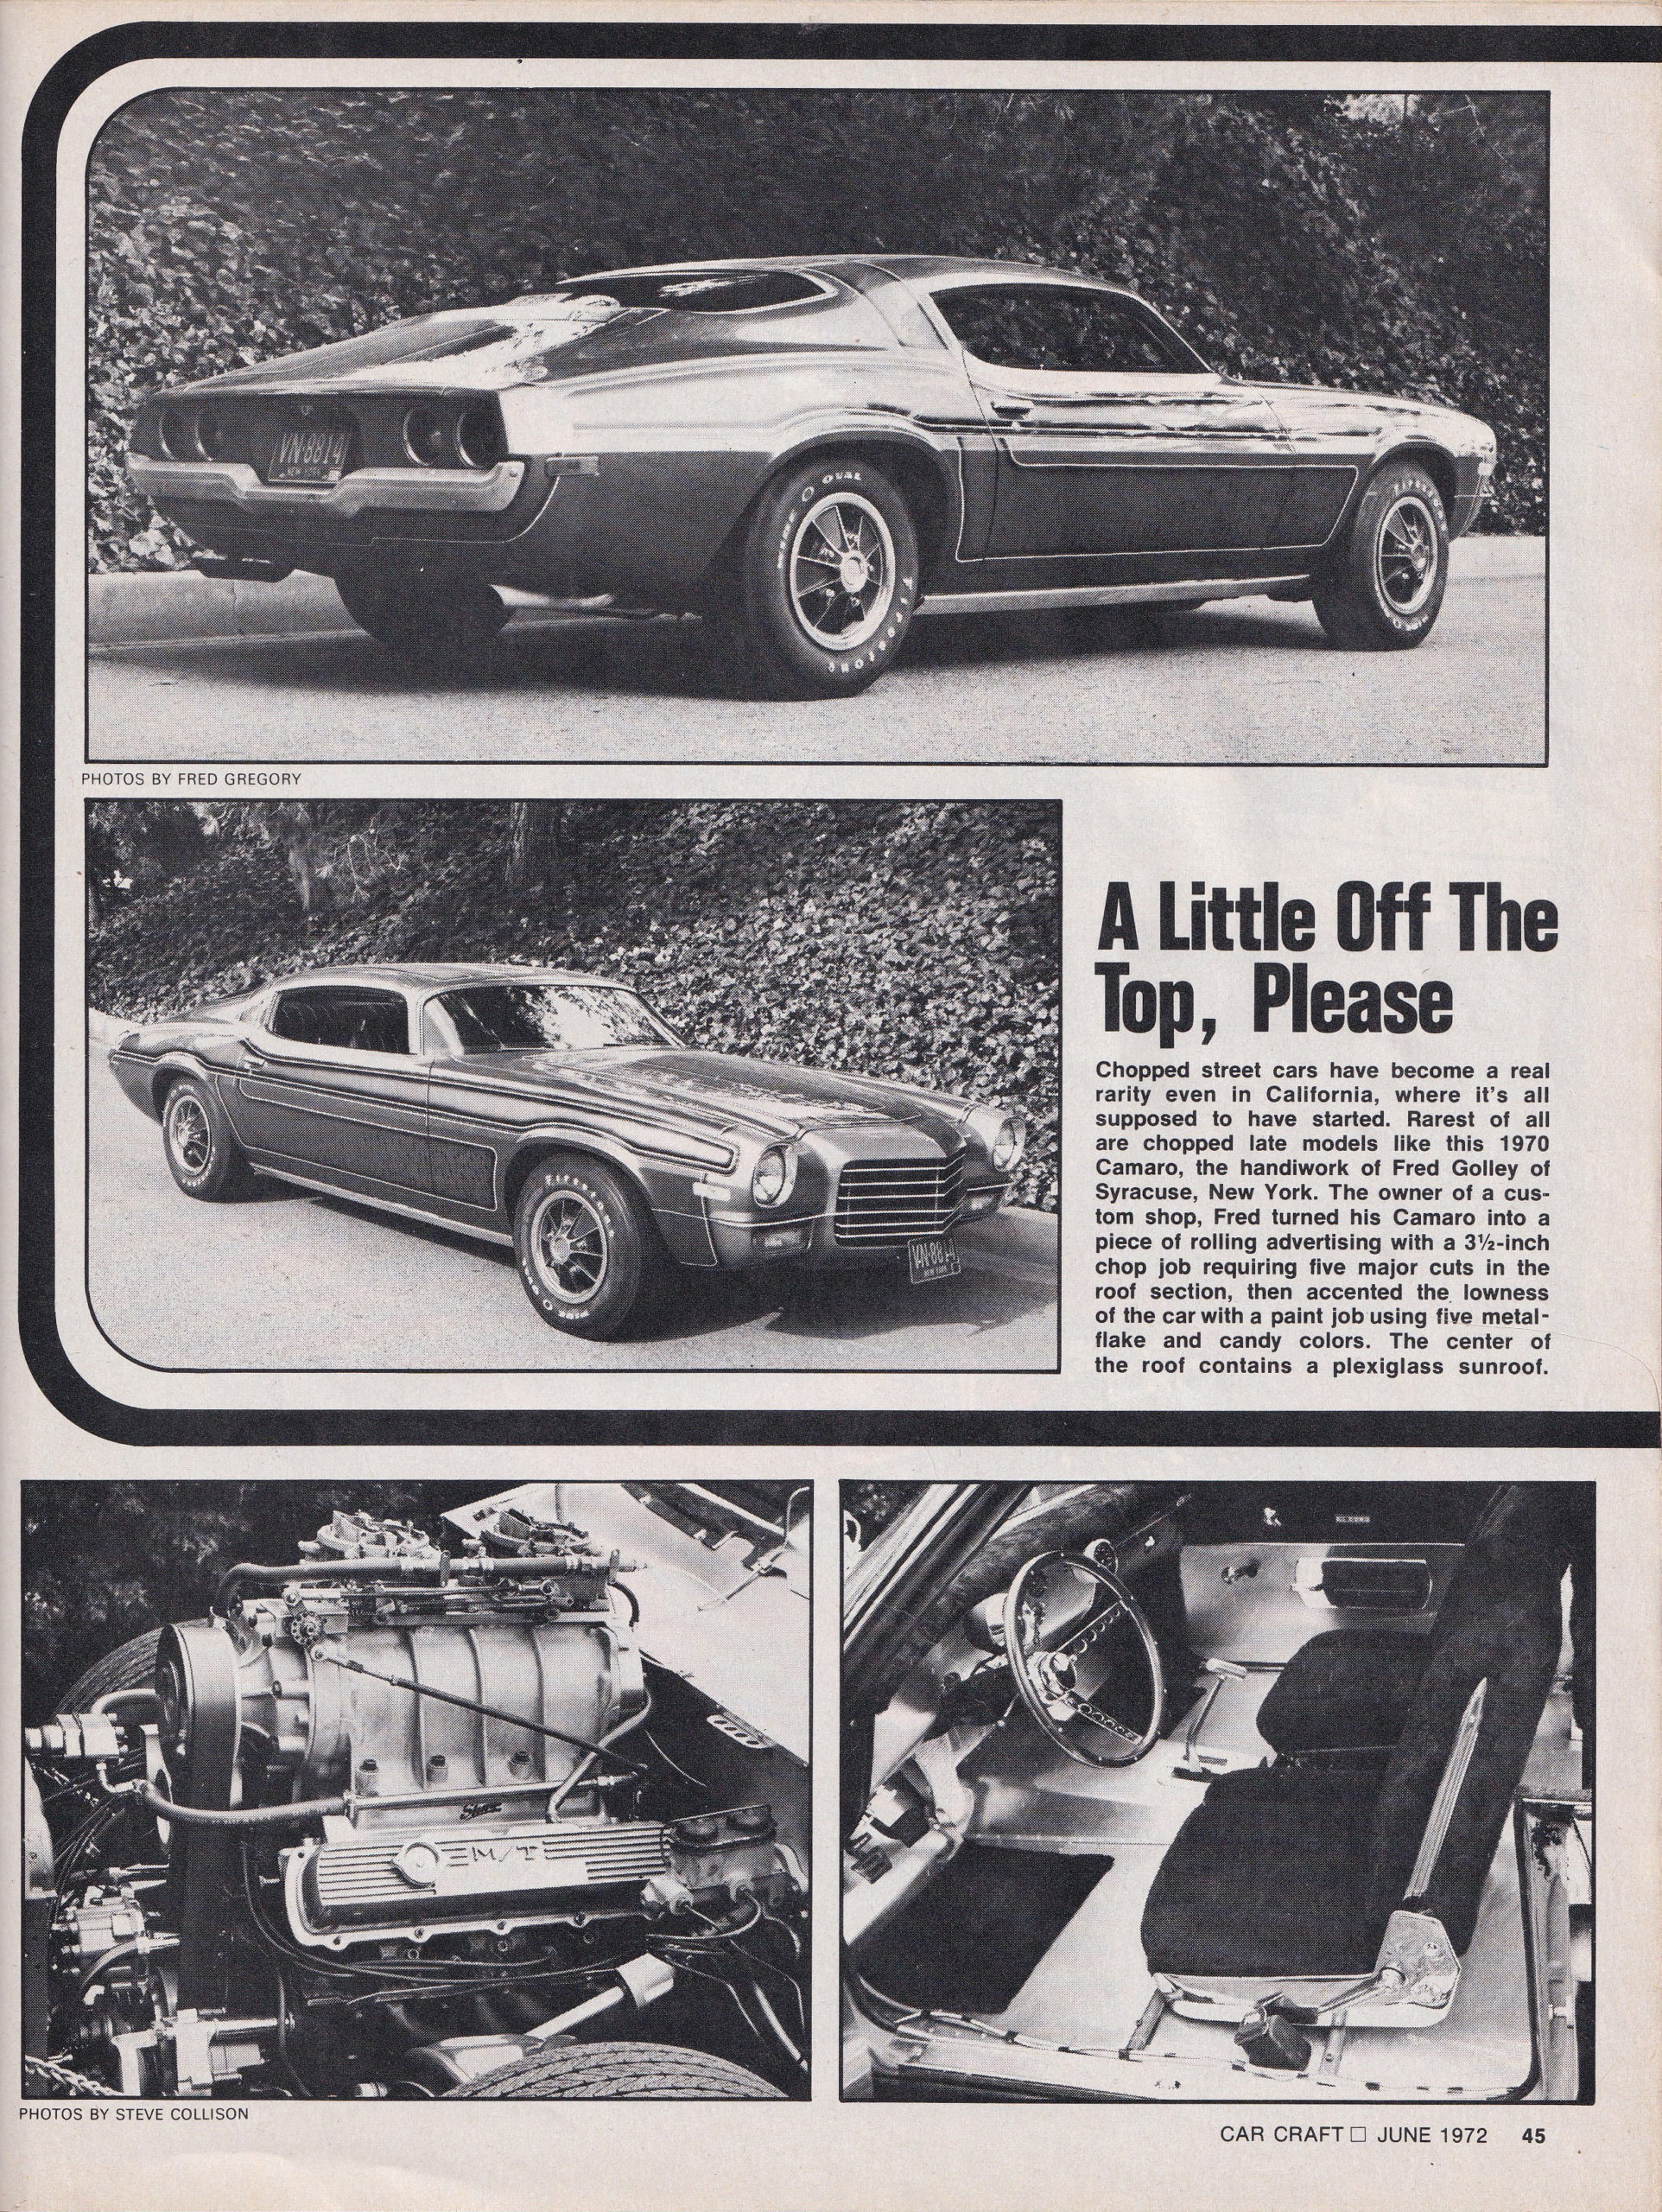 Street Freaks section from June 1972 issue of Car Craft, page 7.